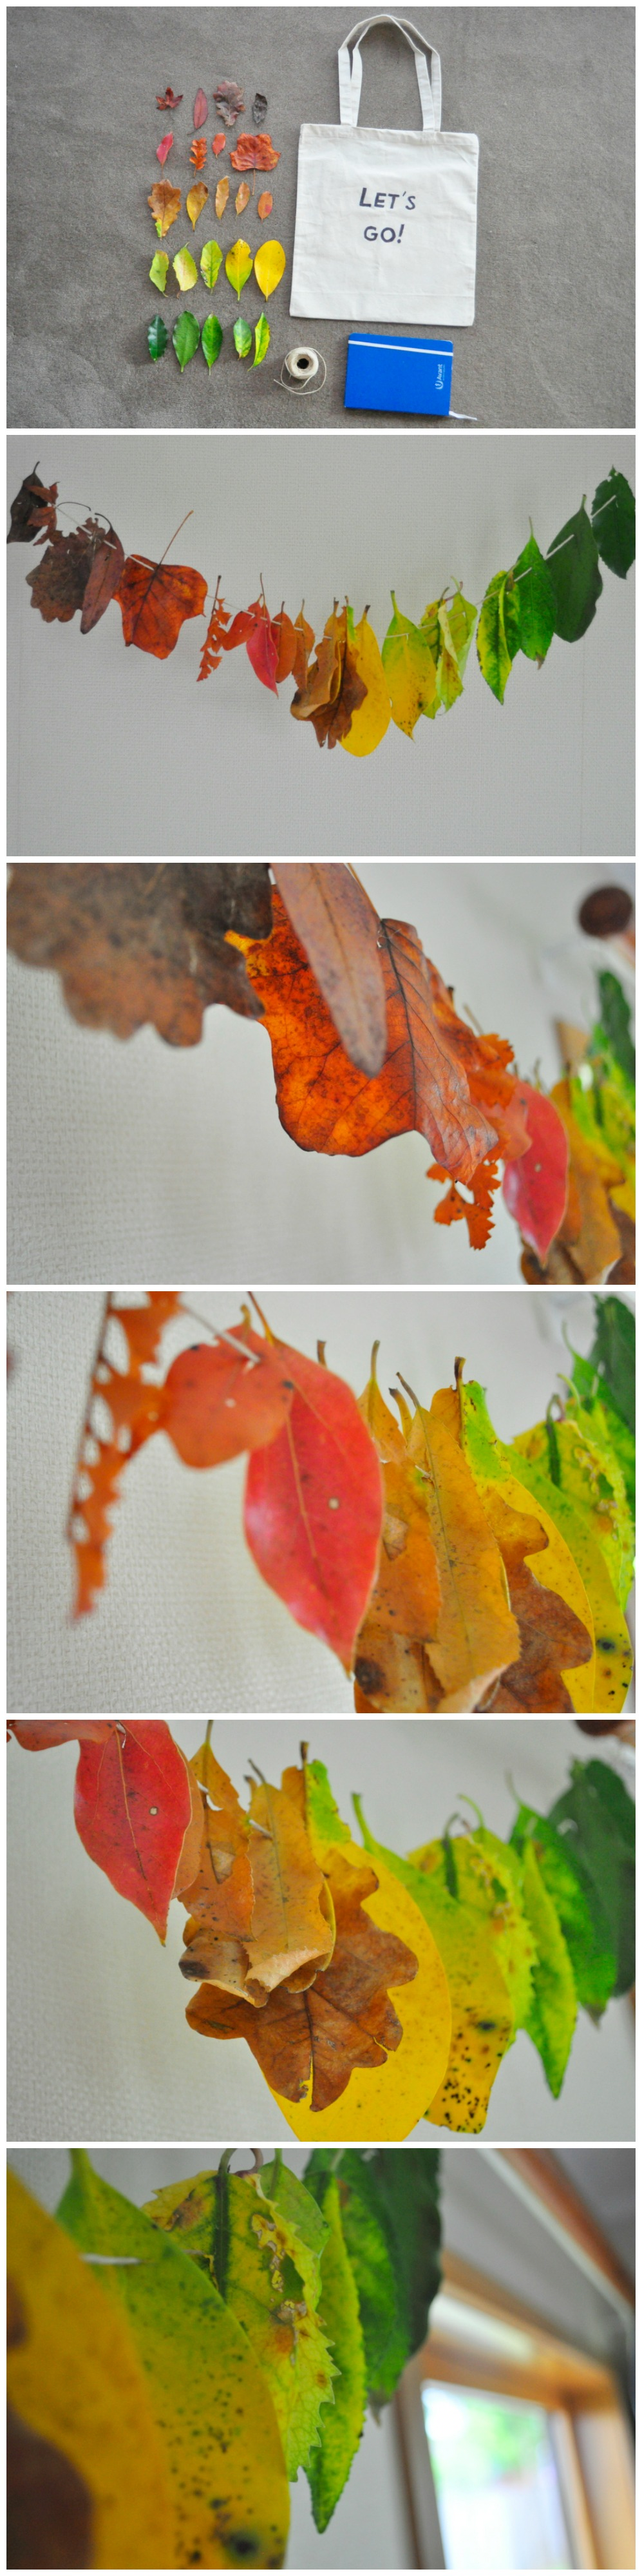 Rainbow Leaves for Autumn